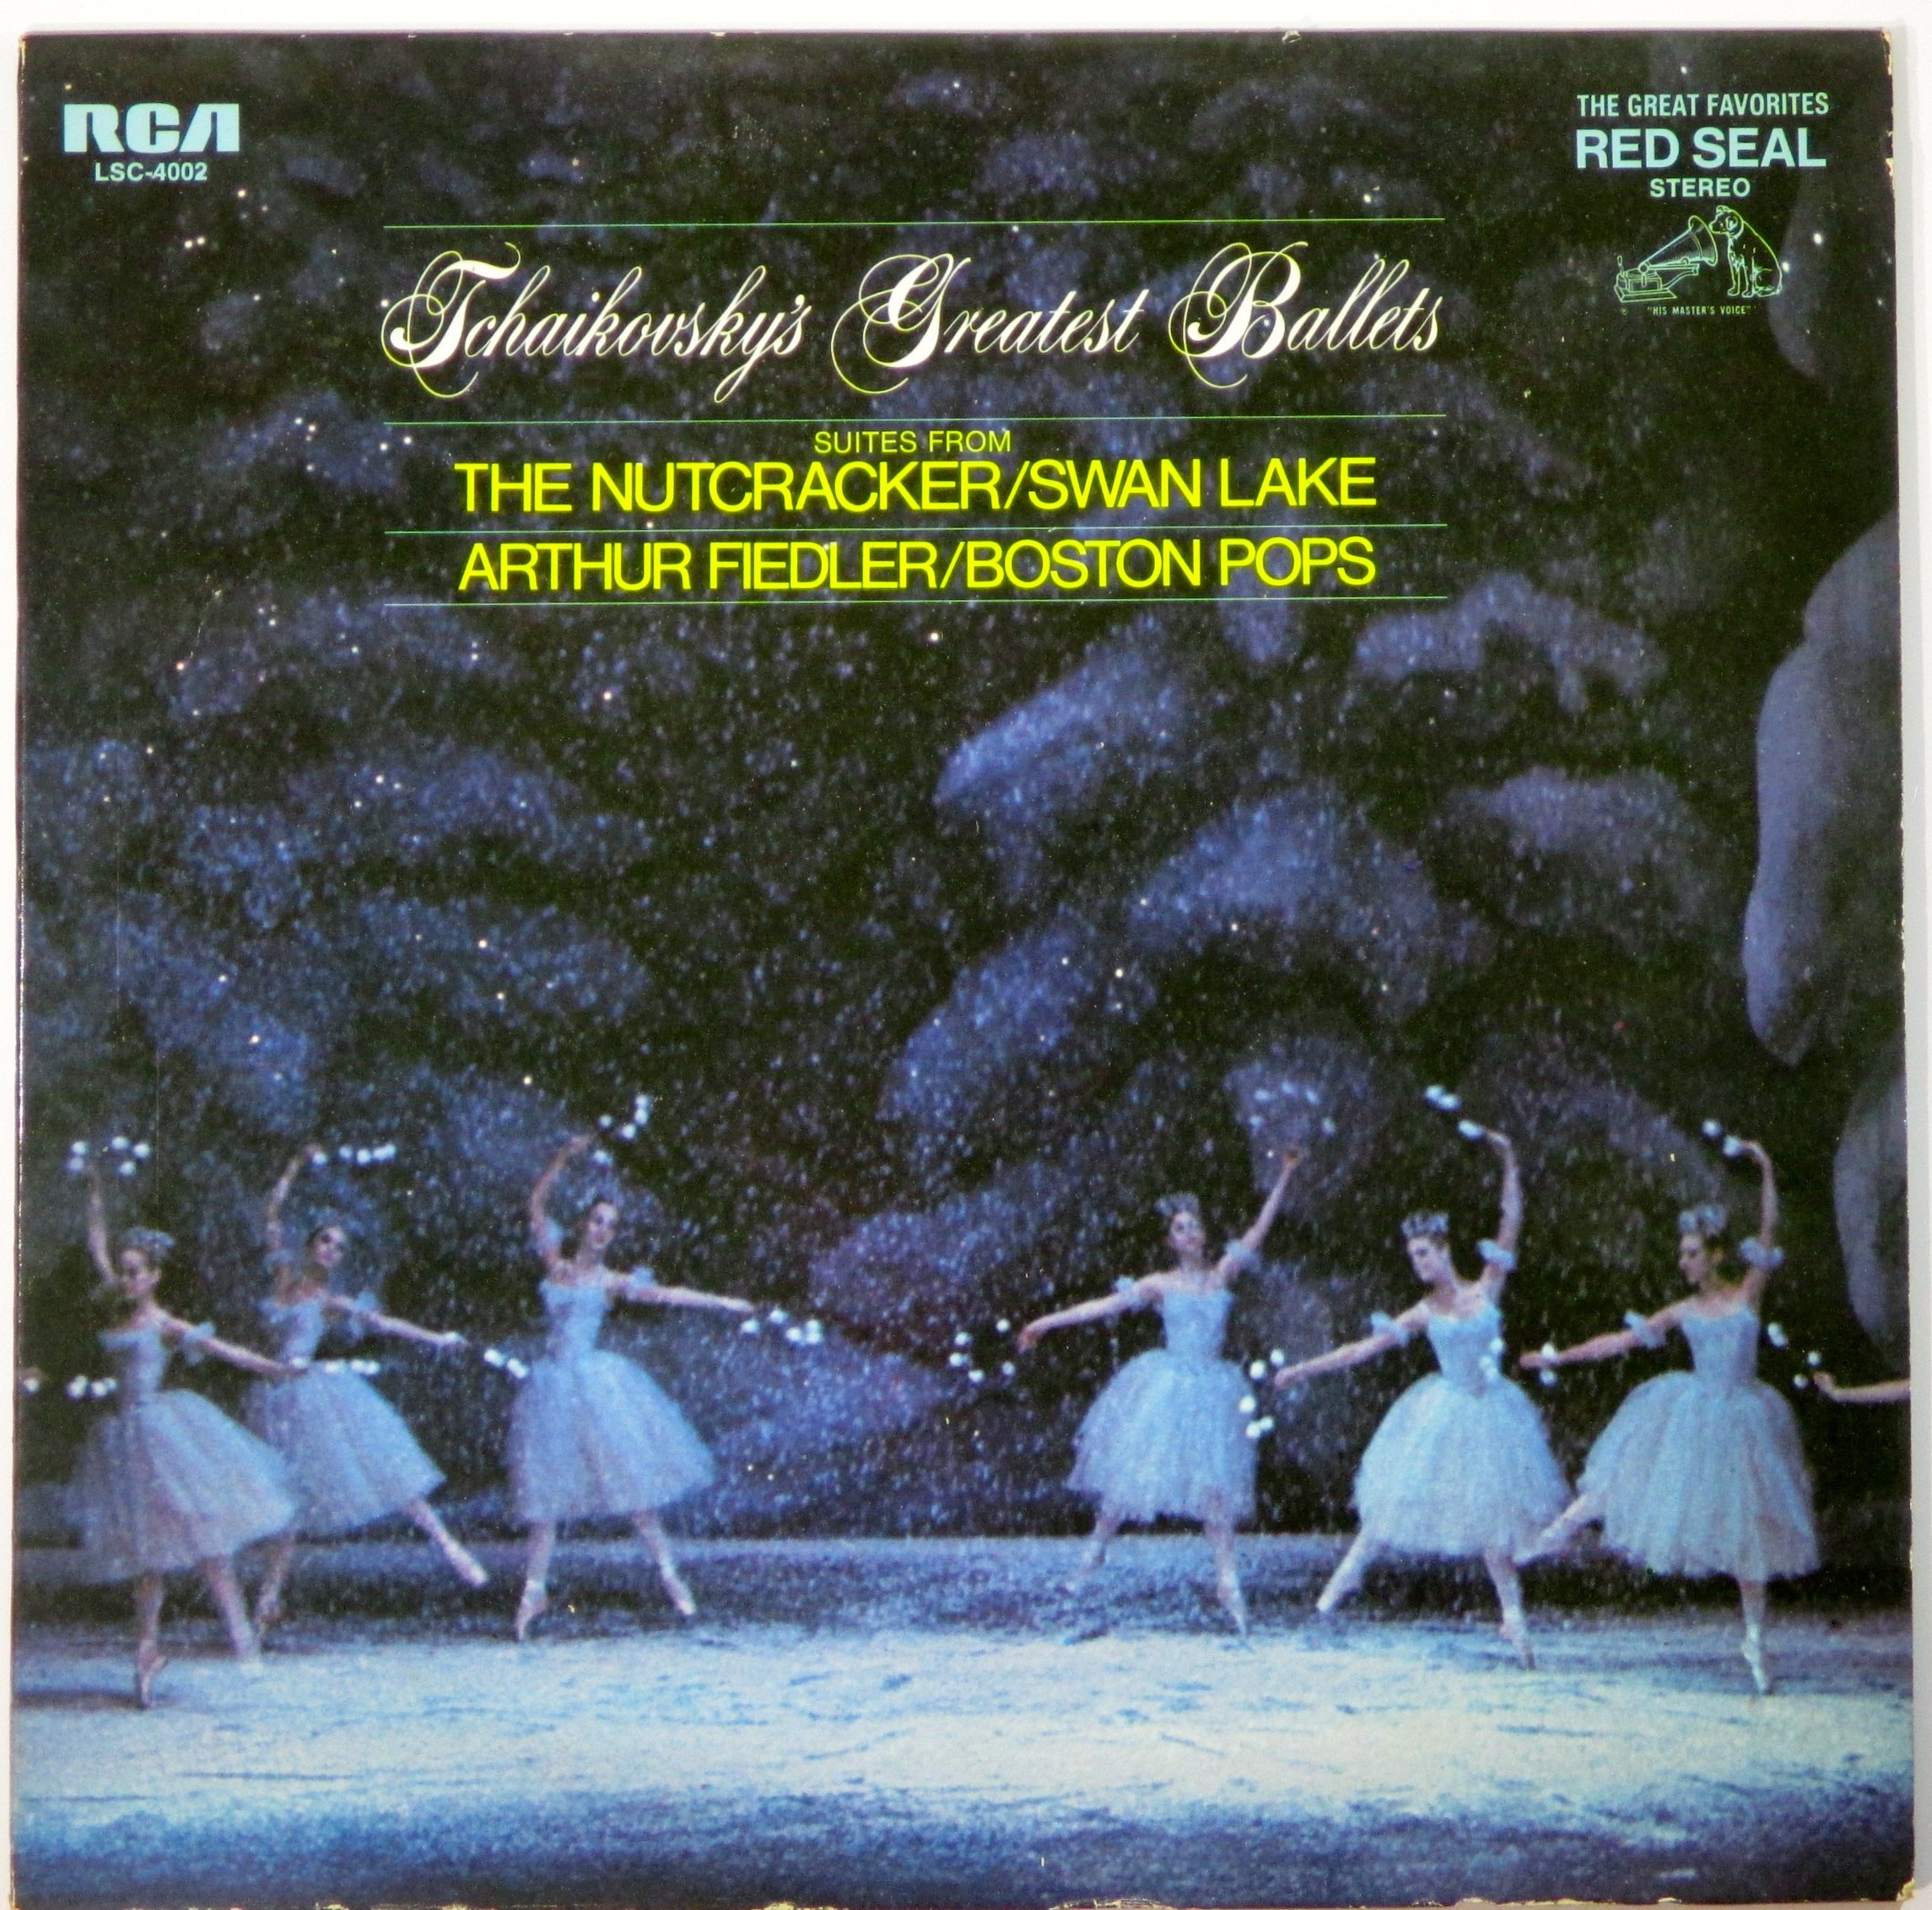 Tschaikovsky's Greatest Ballets: Suites From The Nutcracker / Swan Lake